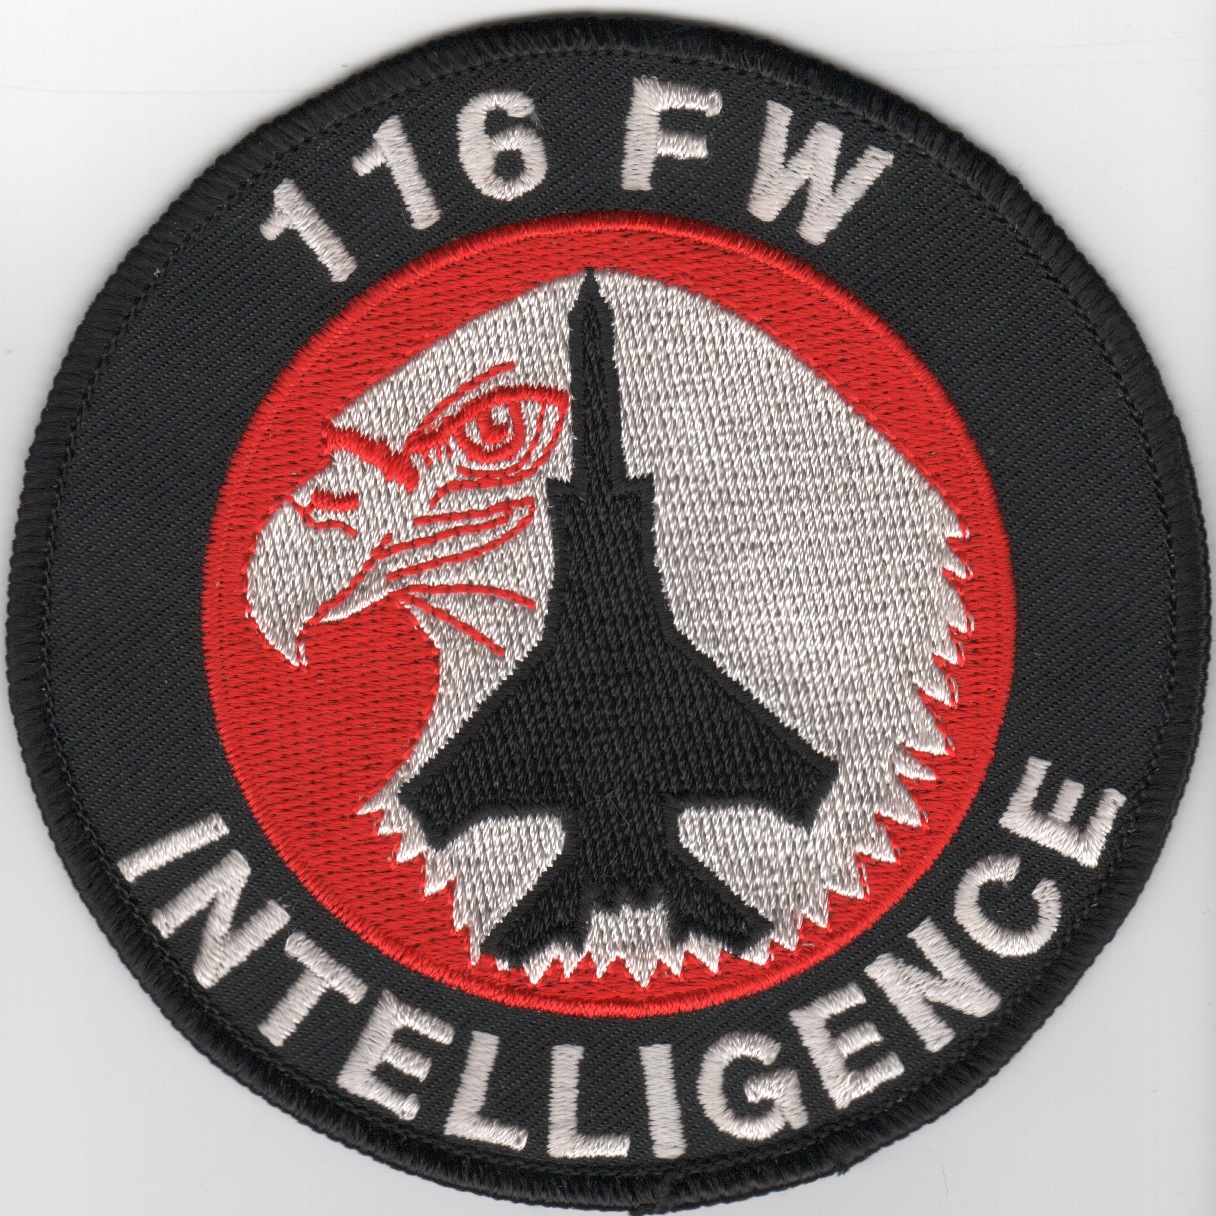 116TFW 'Intelligence' Patch (Original)